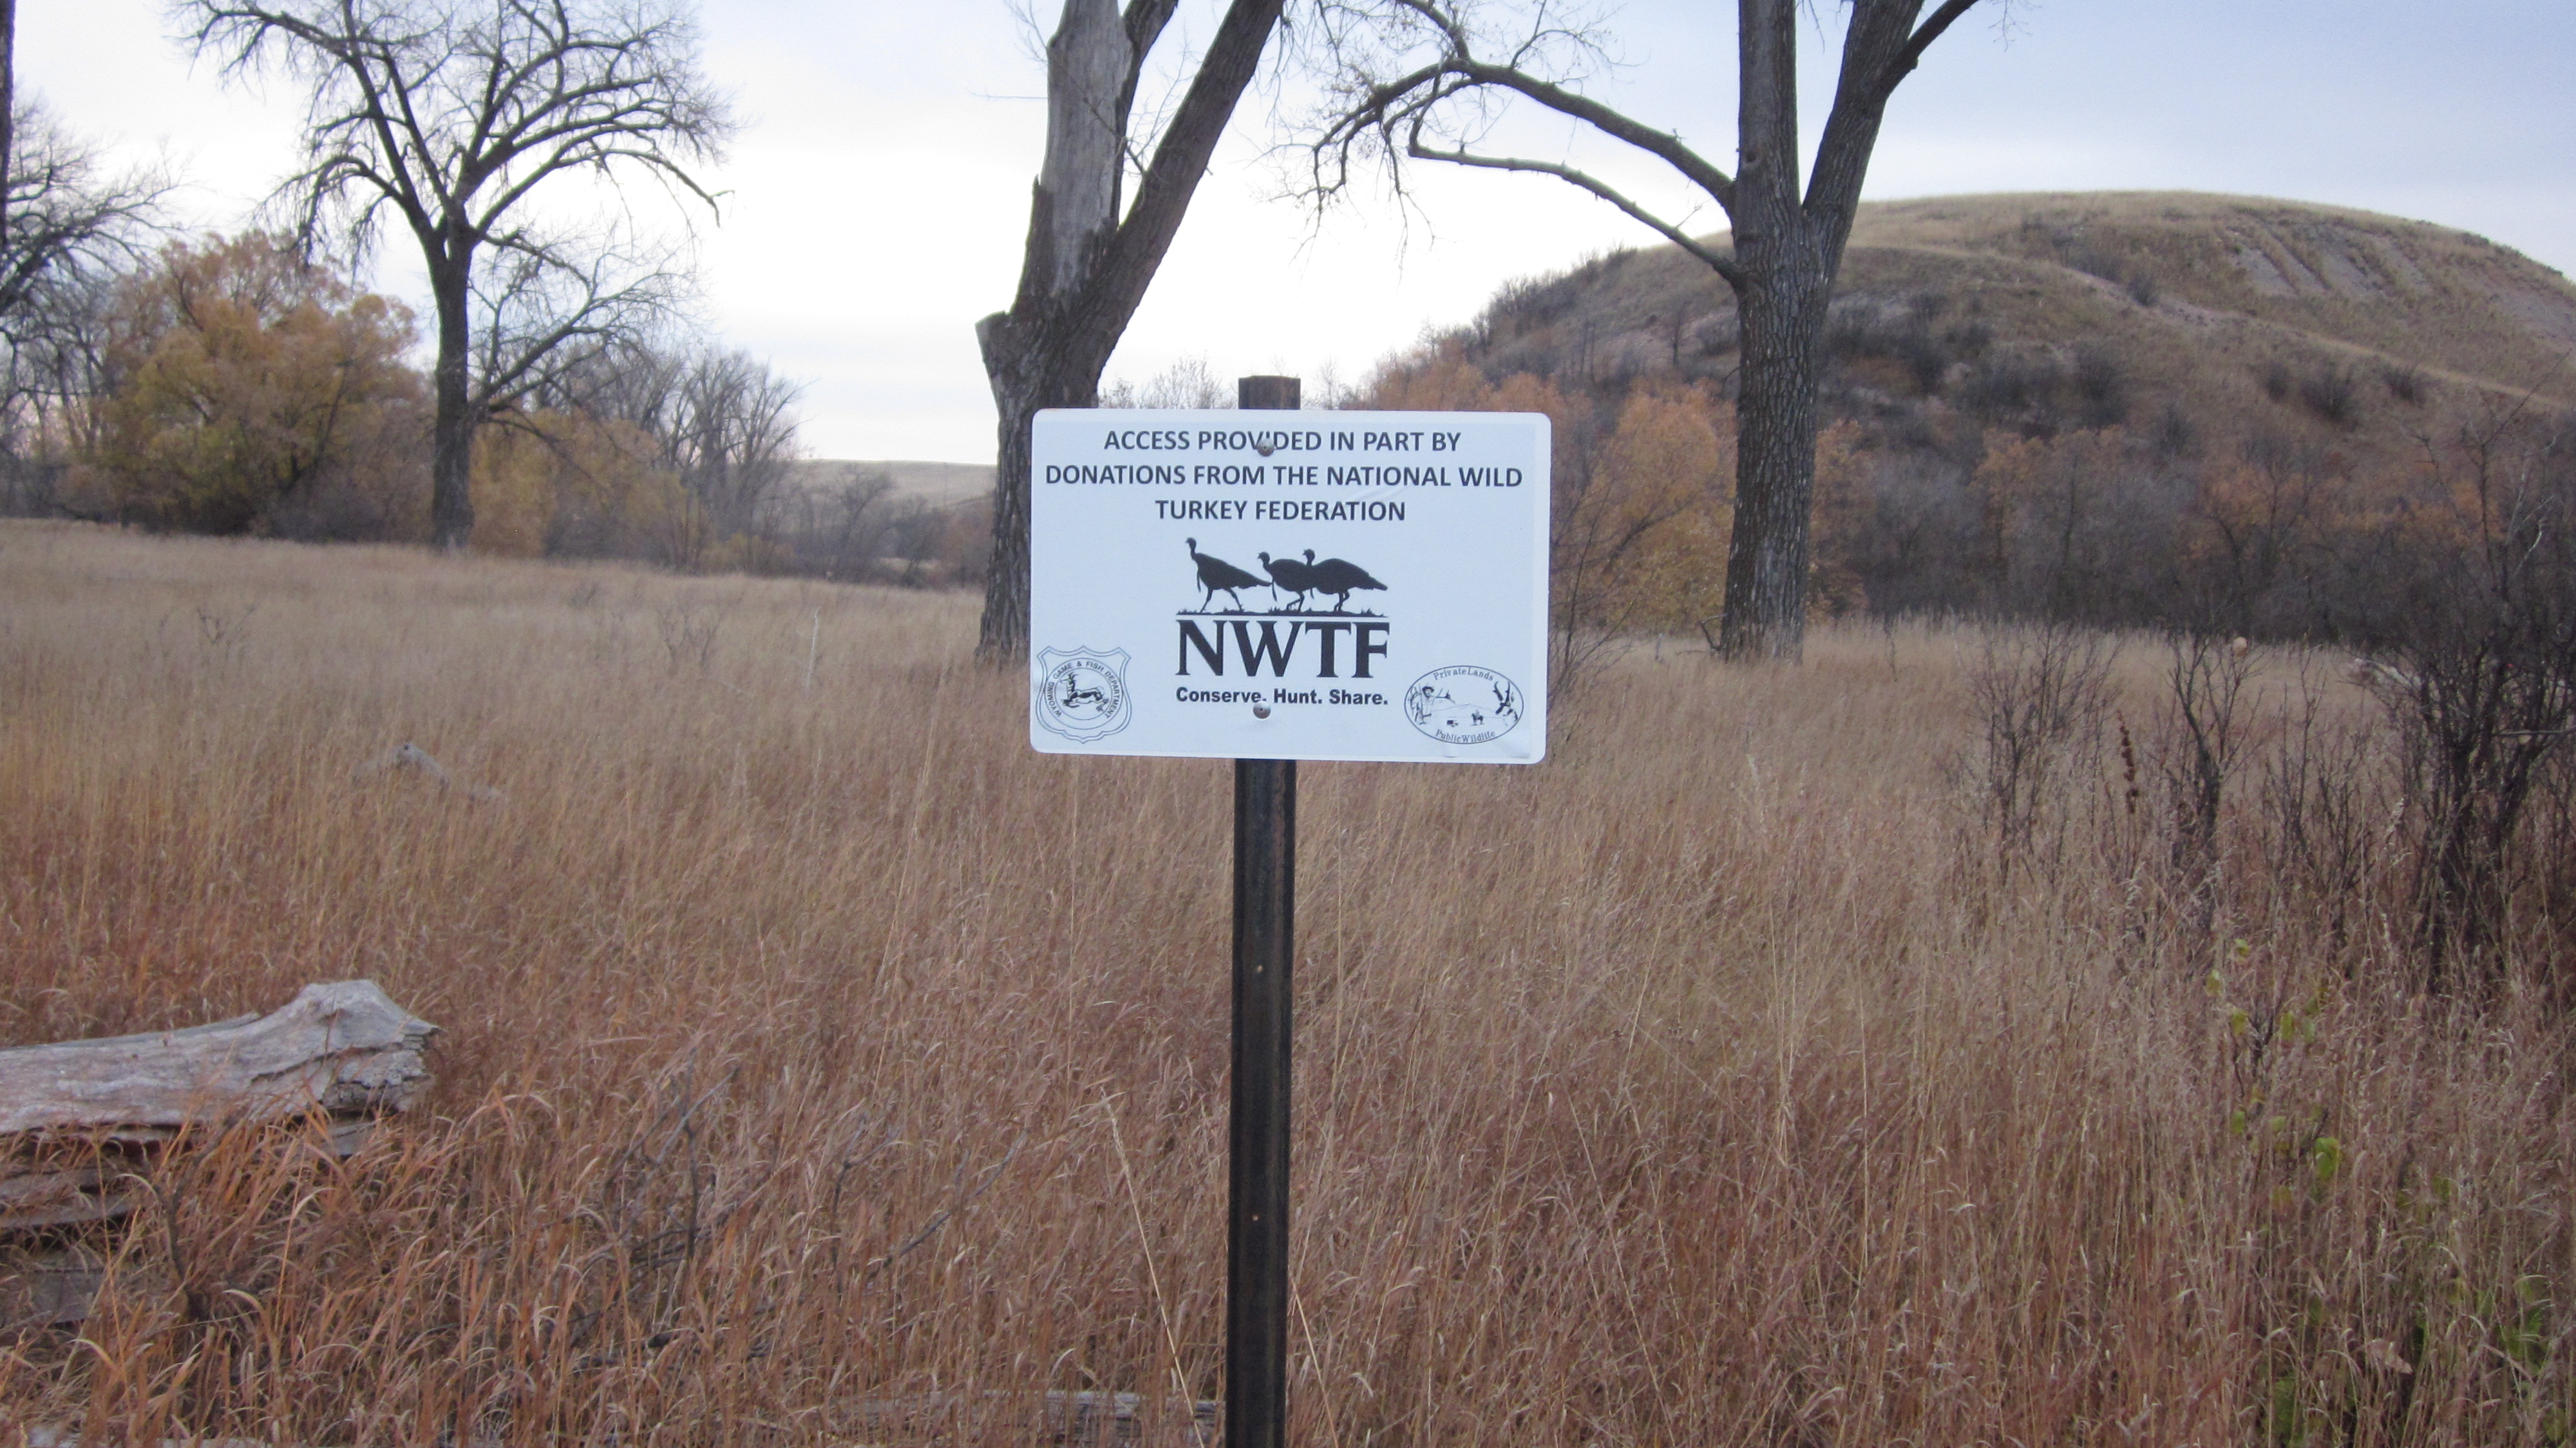 NWTF helps open hunting access across Wyoming